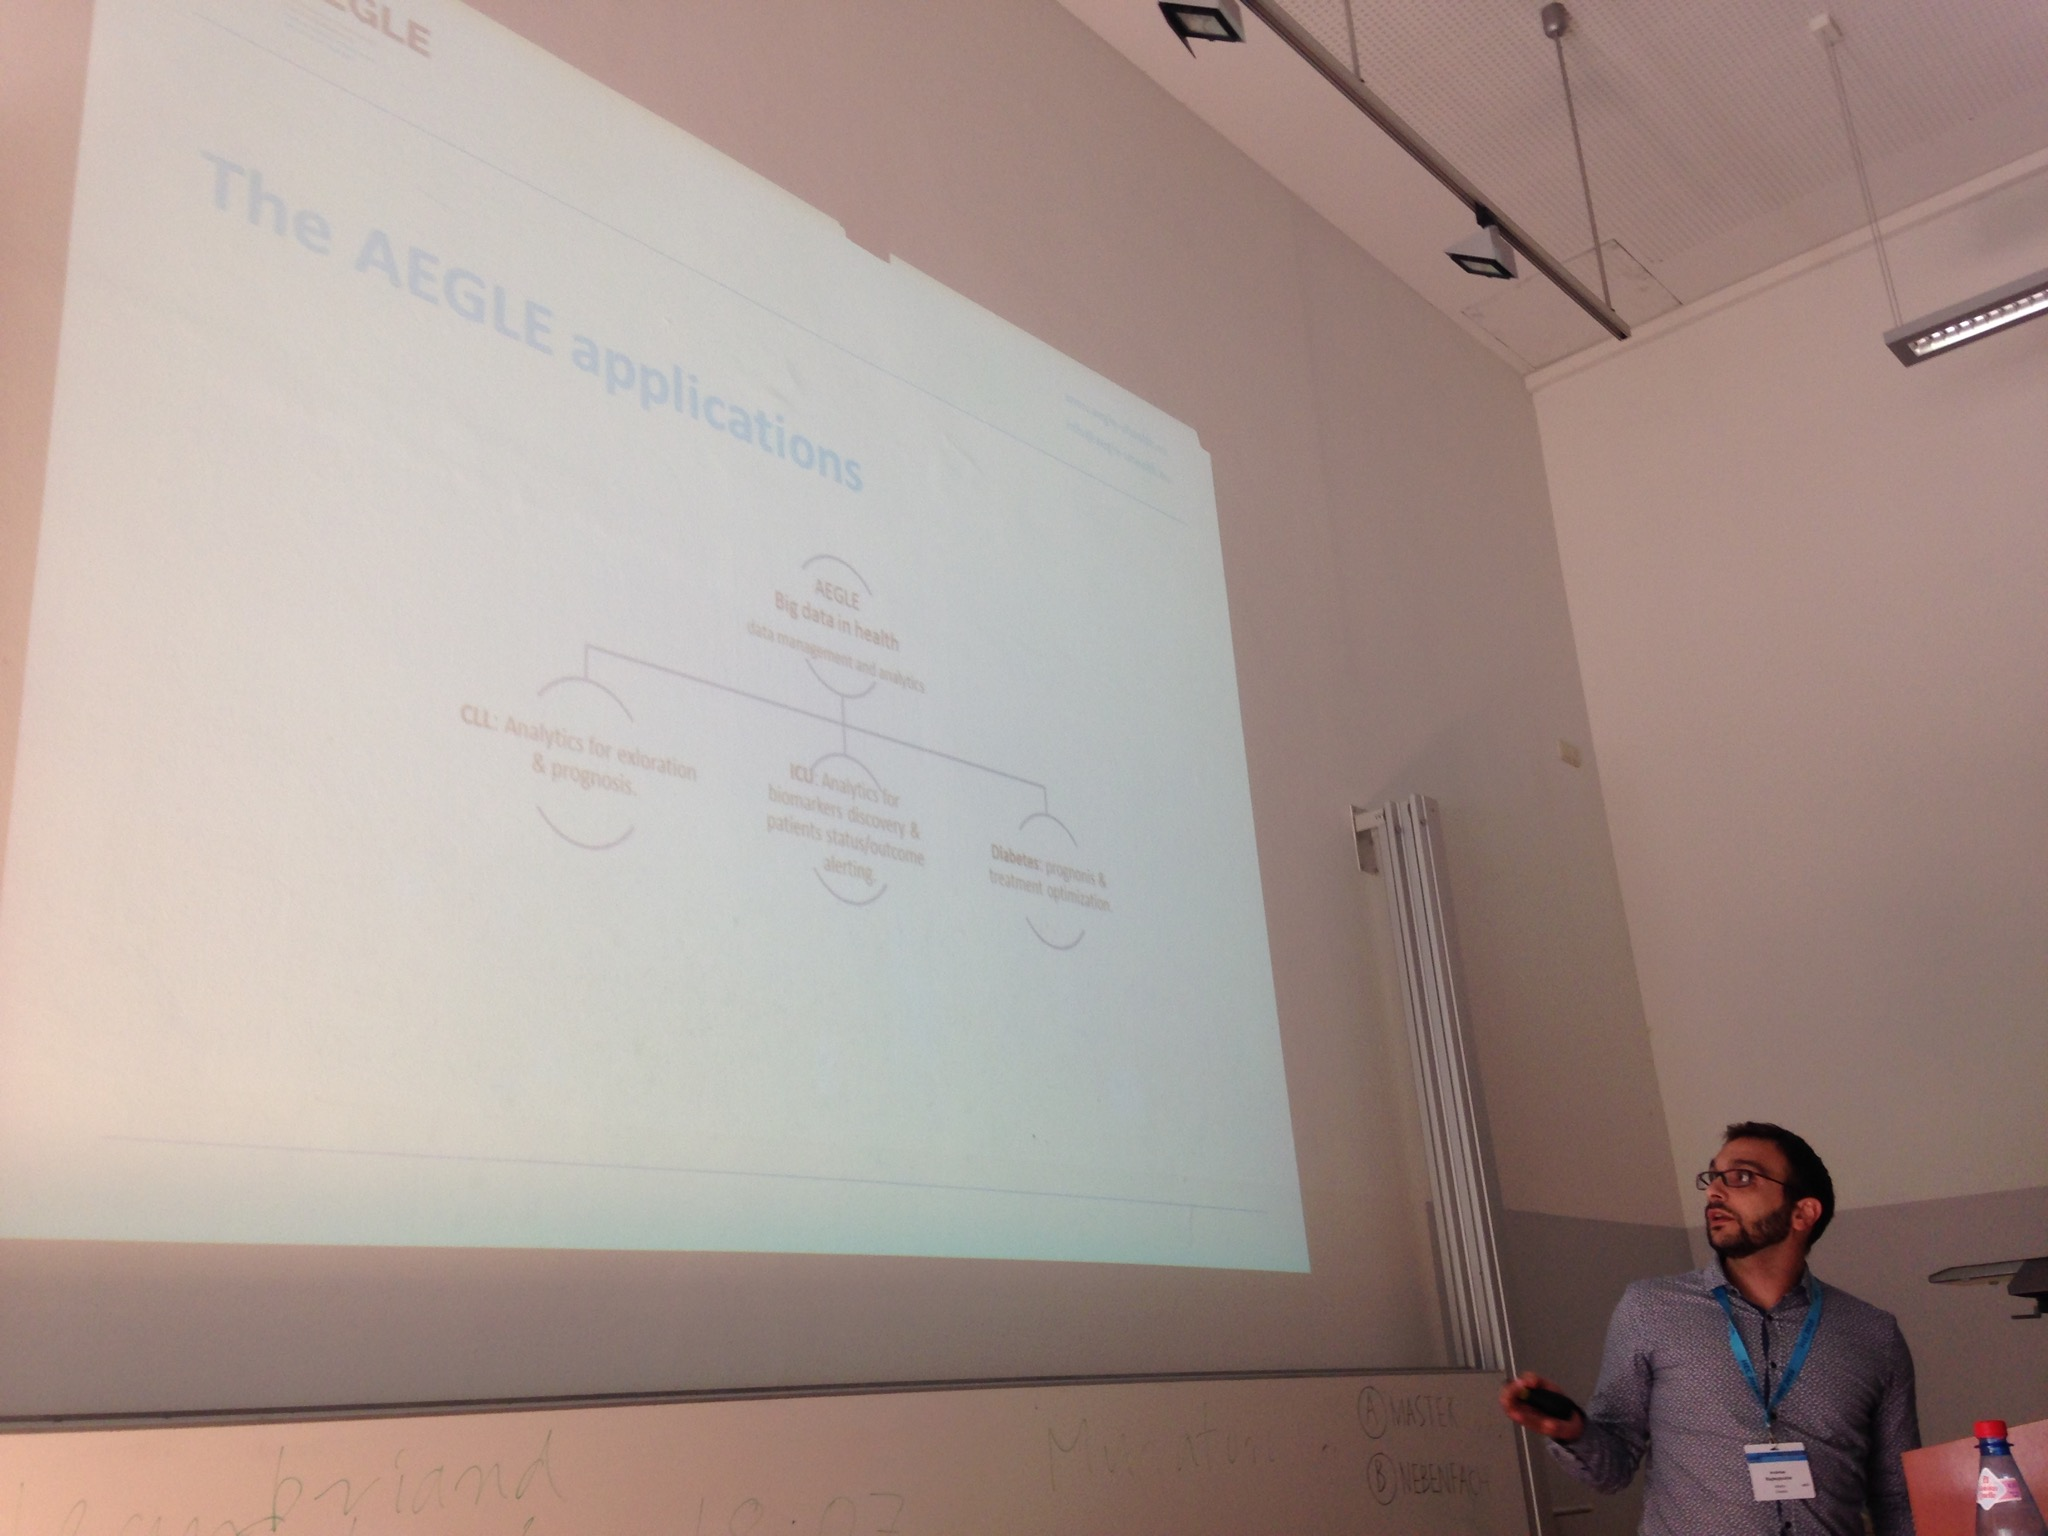 AEGLE Coordinator, Andreas Raptopoulos, during his presentation at HEC 2016 (Munich)